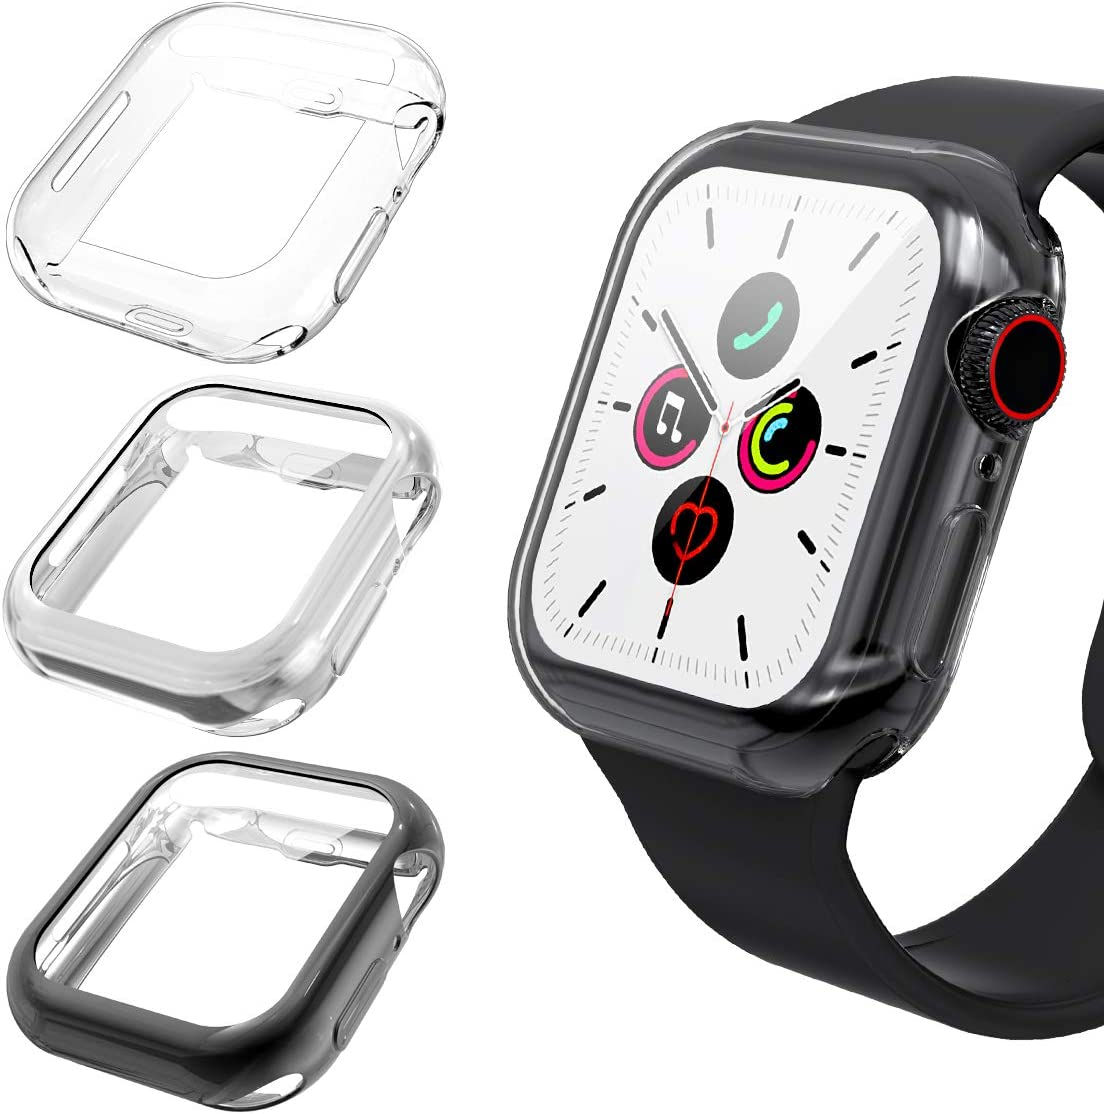 Goton 40mm Case Compatible for Apple Watch Case 40mm Series 5 Series 4 Screen Protector, (3 Color Packs) Ultra Thin iWatch 40mm Case Screen Protector with Full Protection Shockproof TPU Cover (40mm)